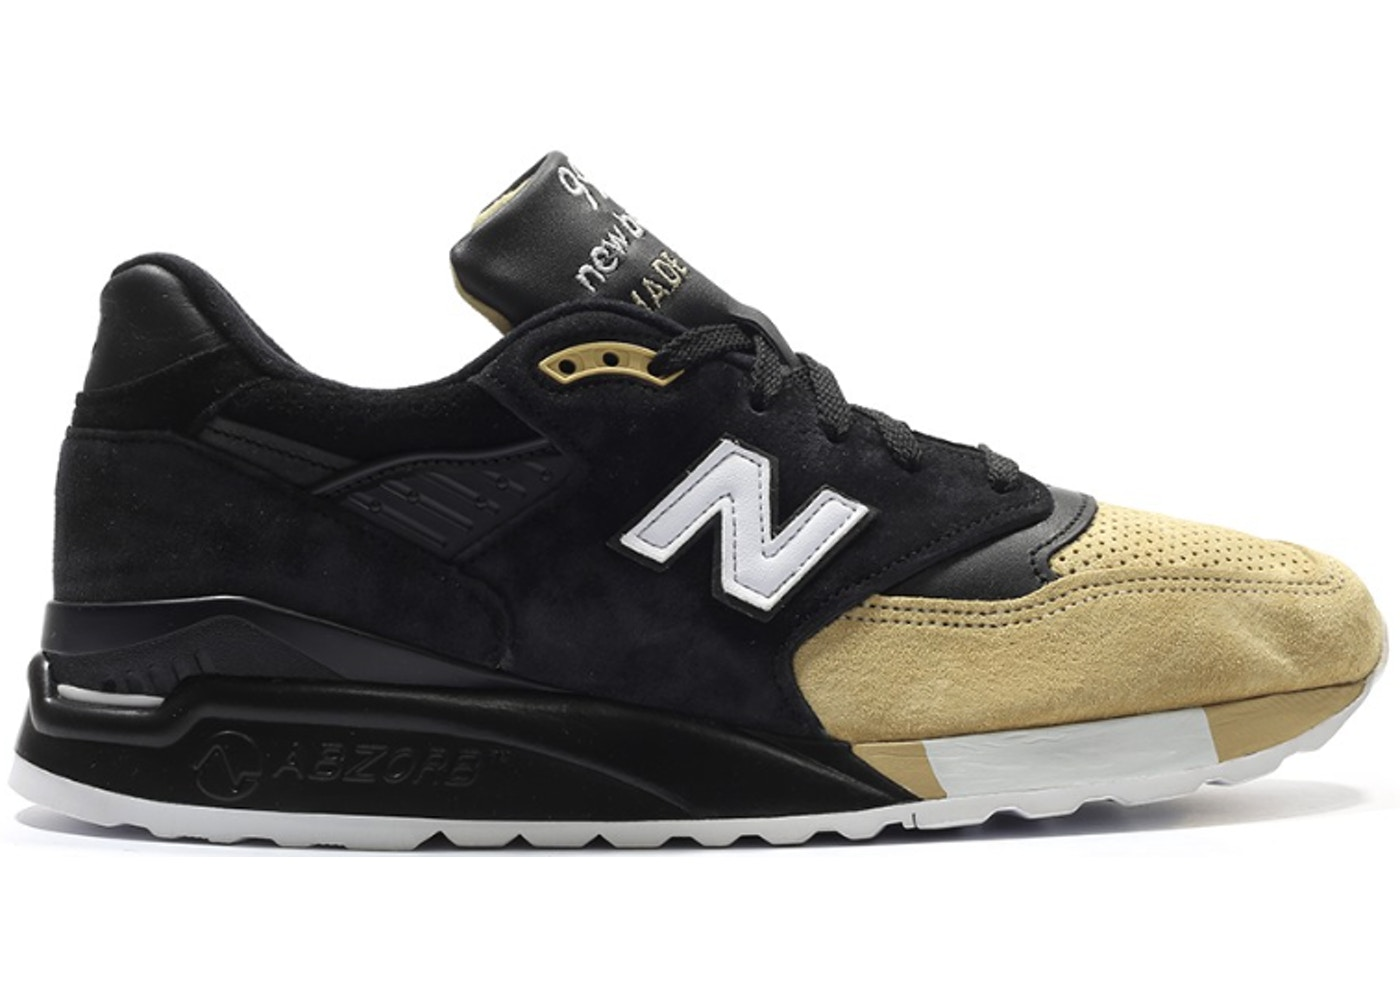 purchase cheap 7279c 32dc8 New Balance 998 Premier PRMR